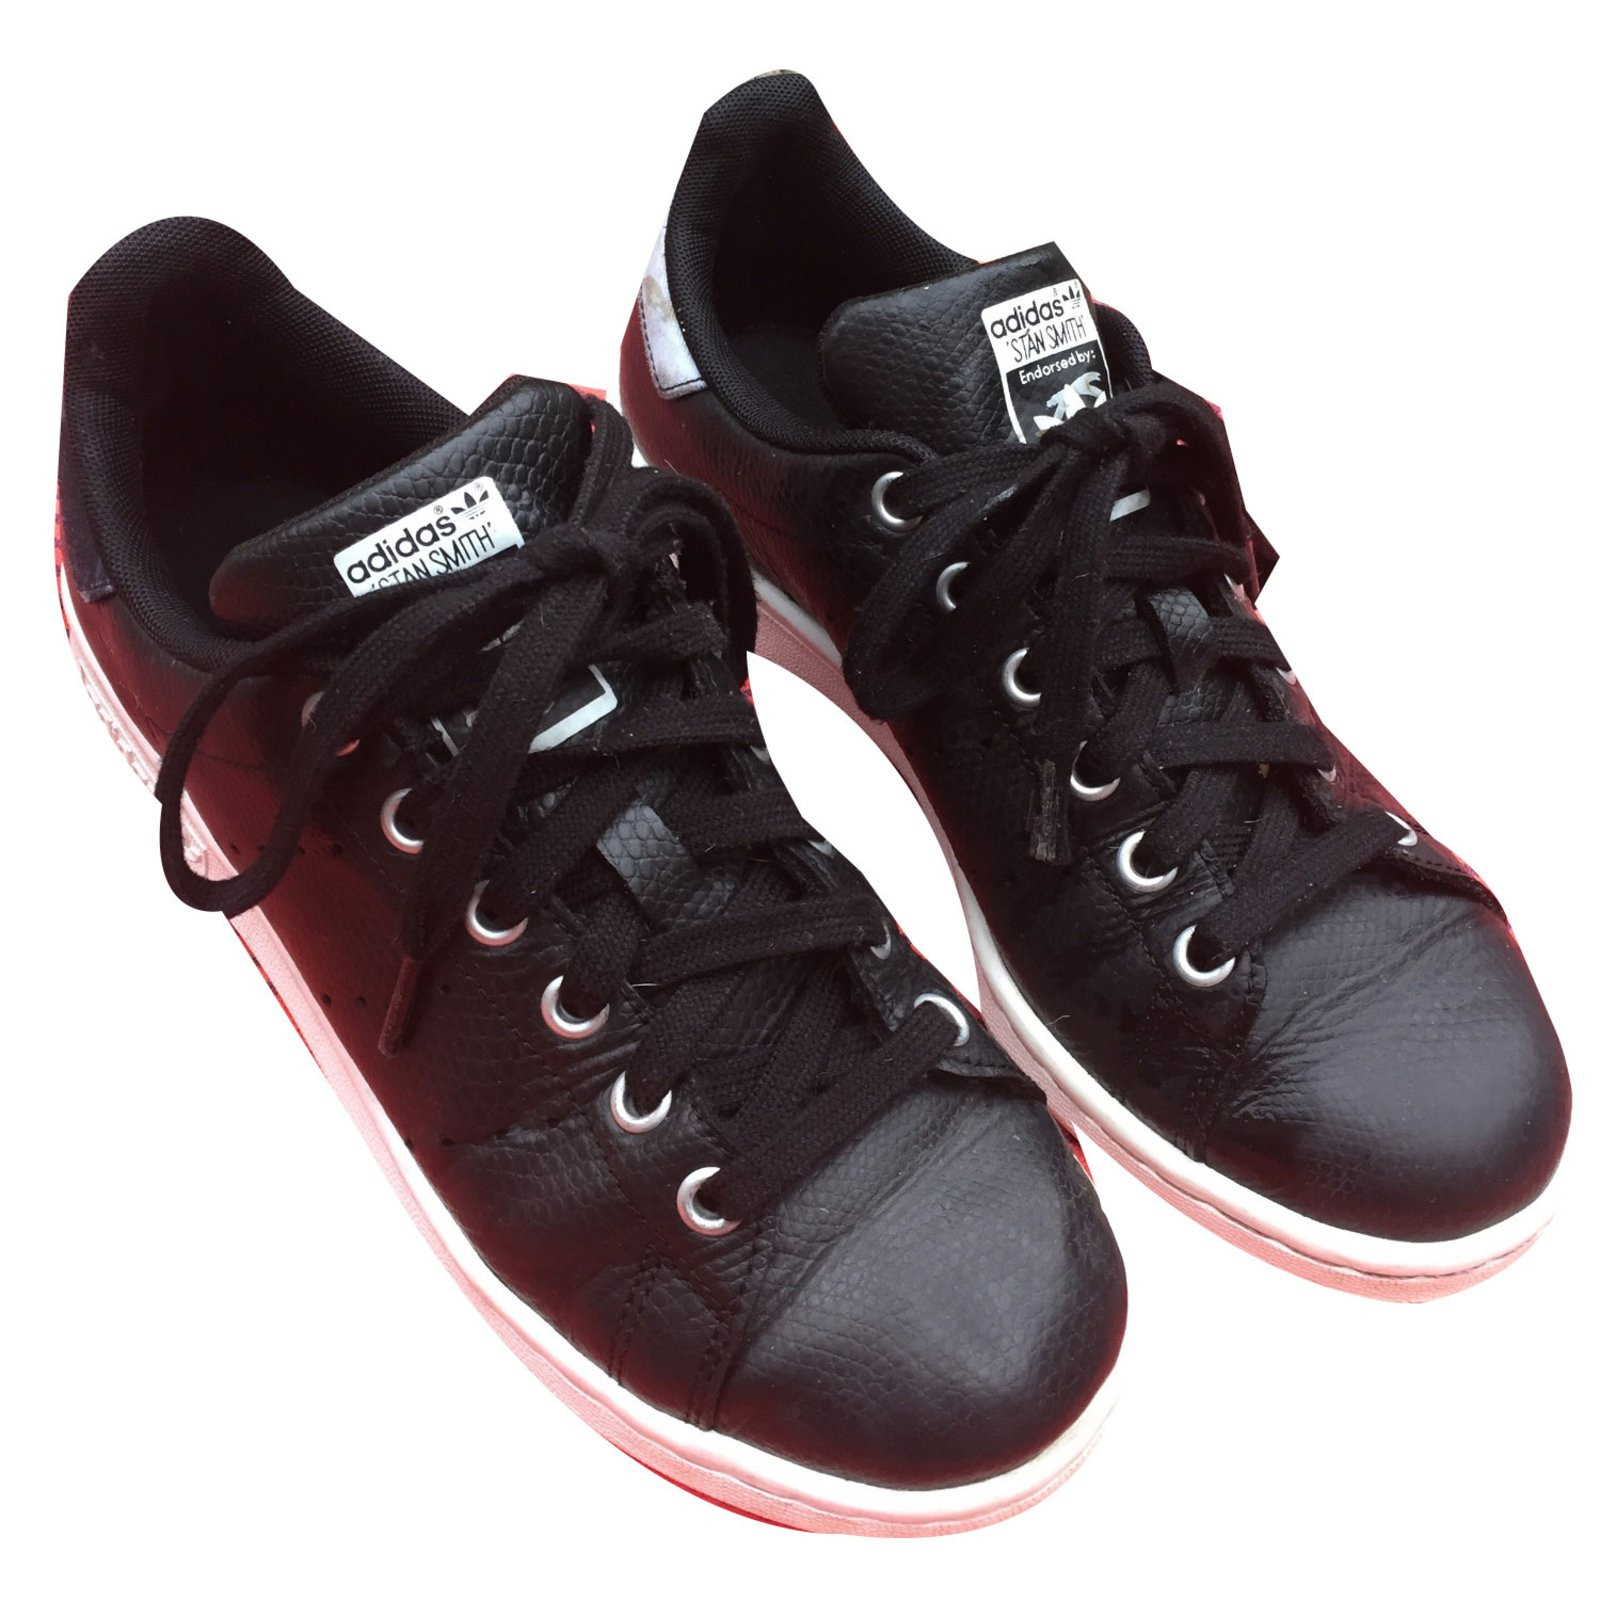 Baskets Adidas STAN SMITH RITA ORA Cuir Noir ref.39600